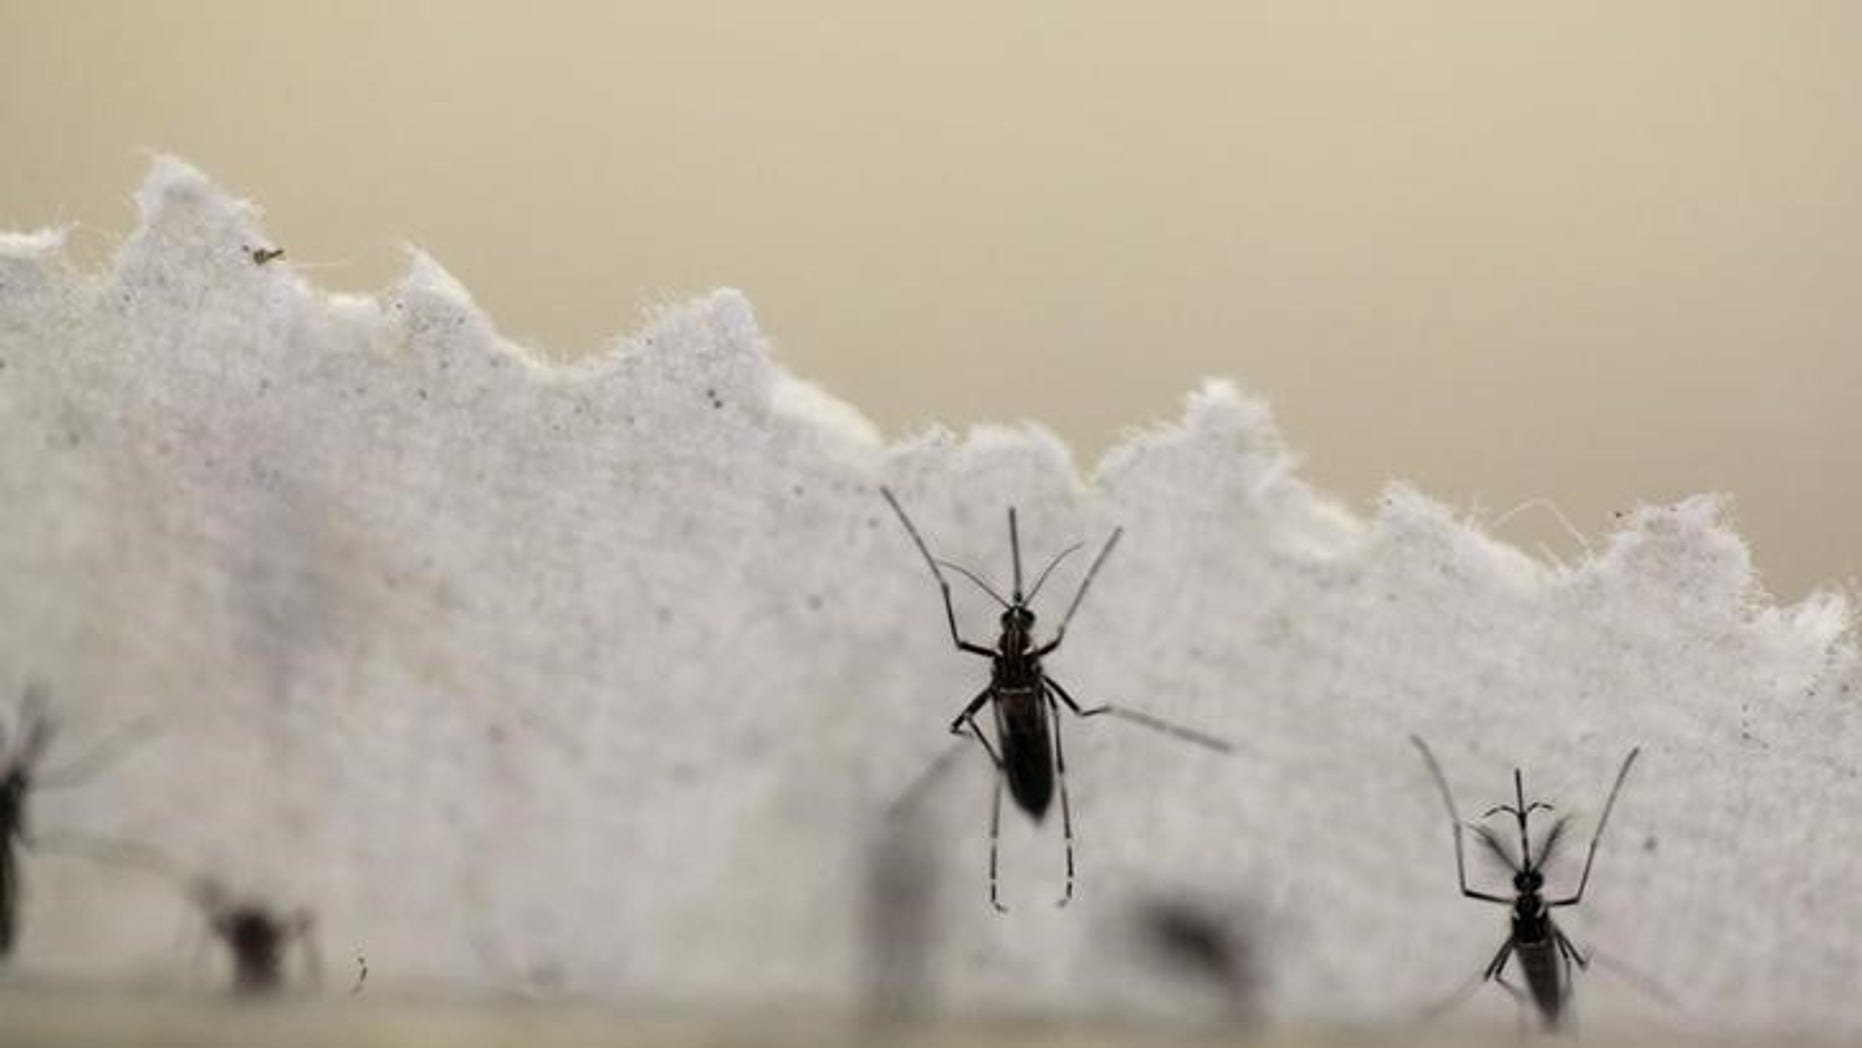 Aedes aegypti mosquitoes are seen at the Laboratory of Entomology and Ecology of the Dengue Branch of the U.S. Centers for Disease Control and Prevention in San Juan